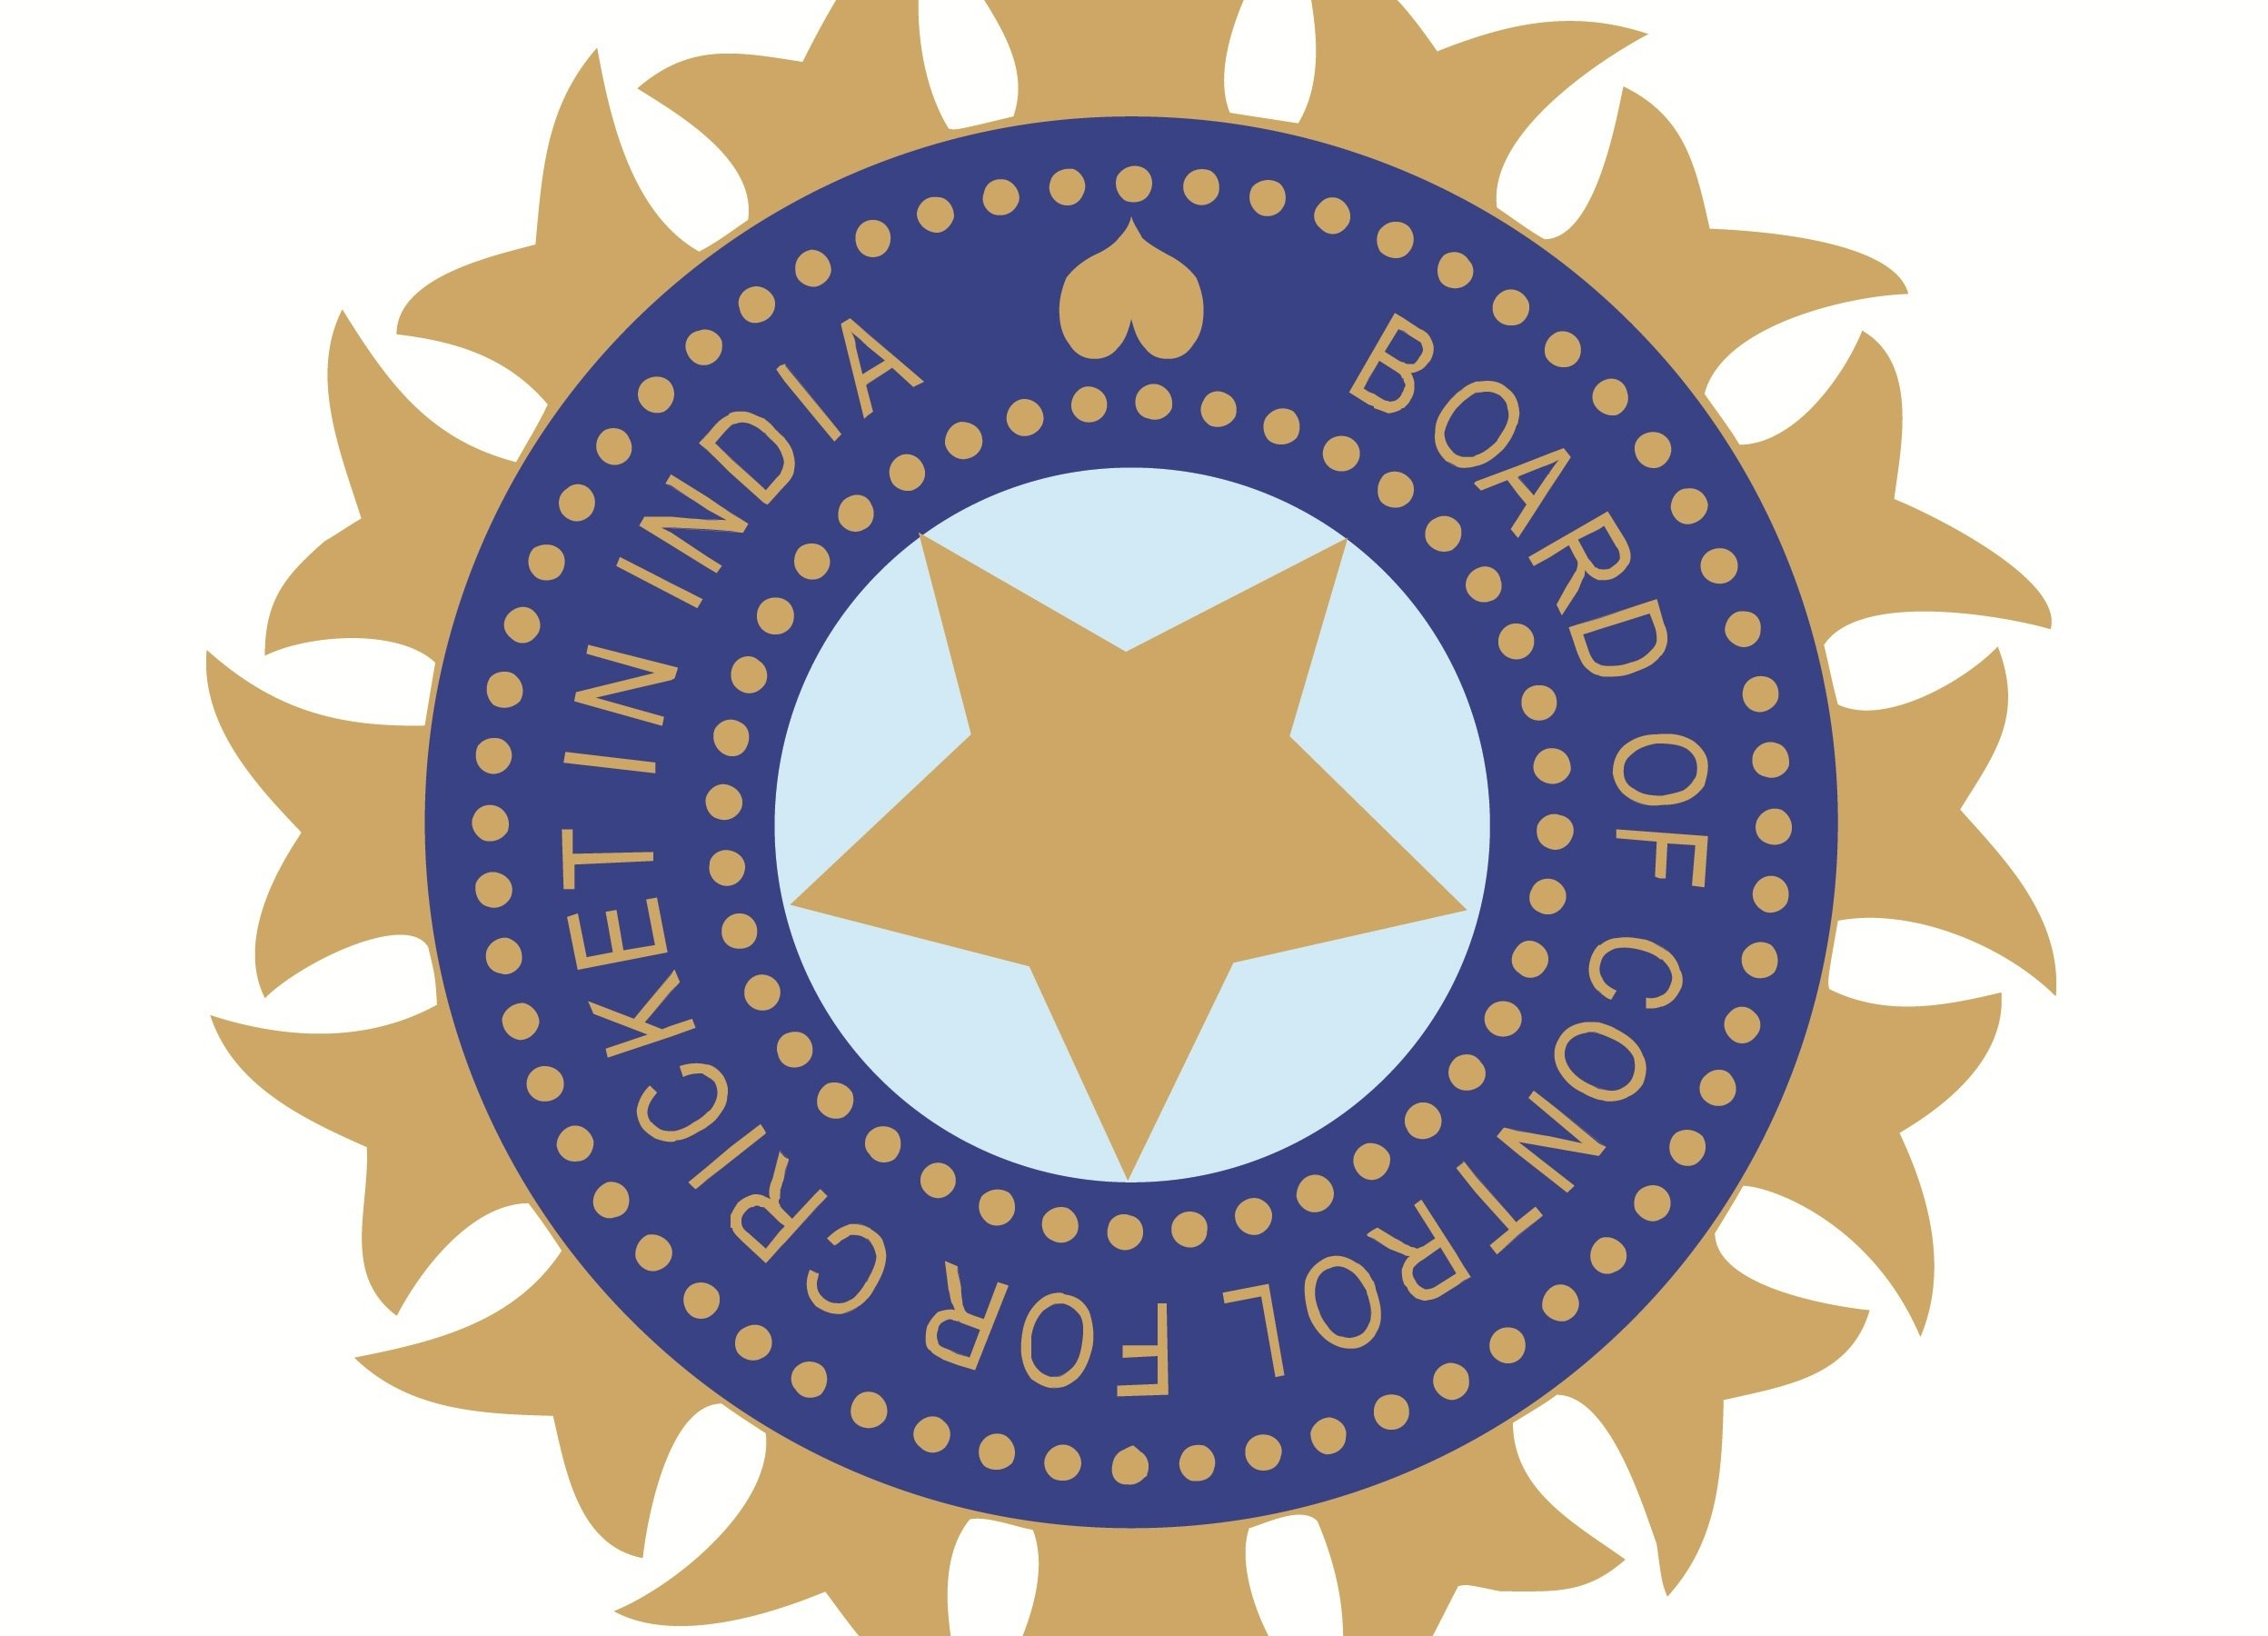 CAG wants to recuse its nominees from BCCI and IPL governing bodies